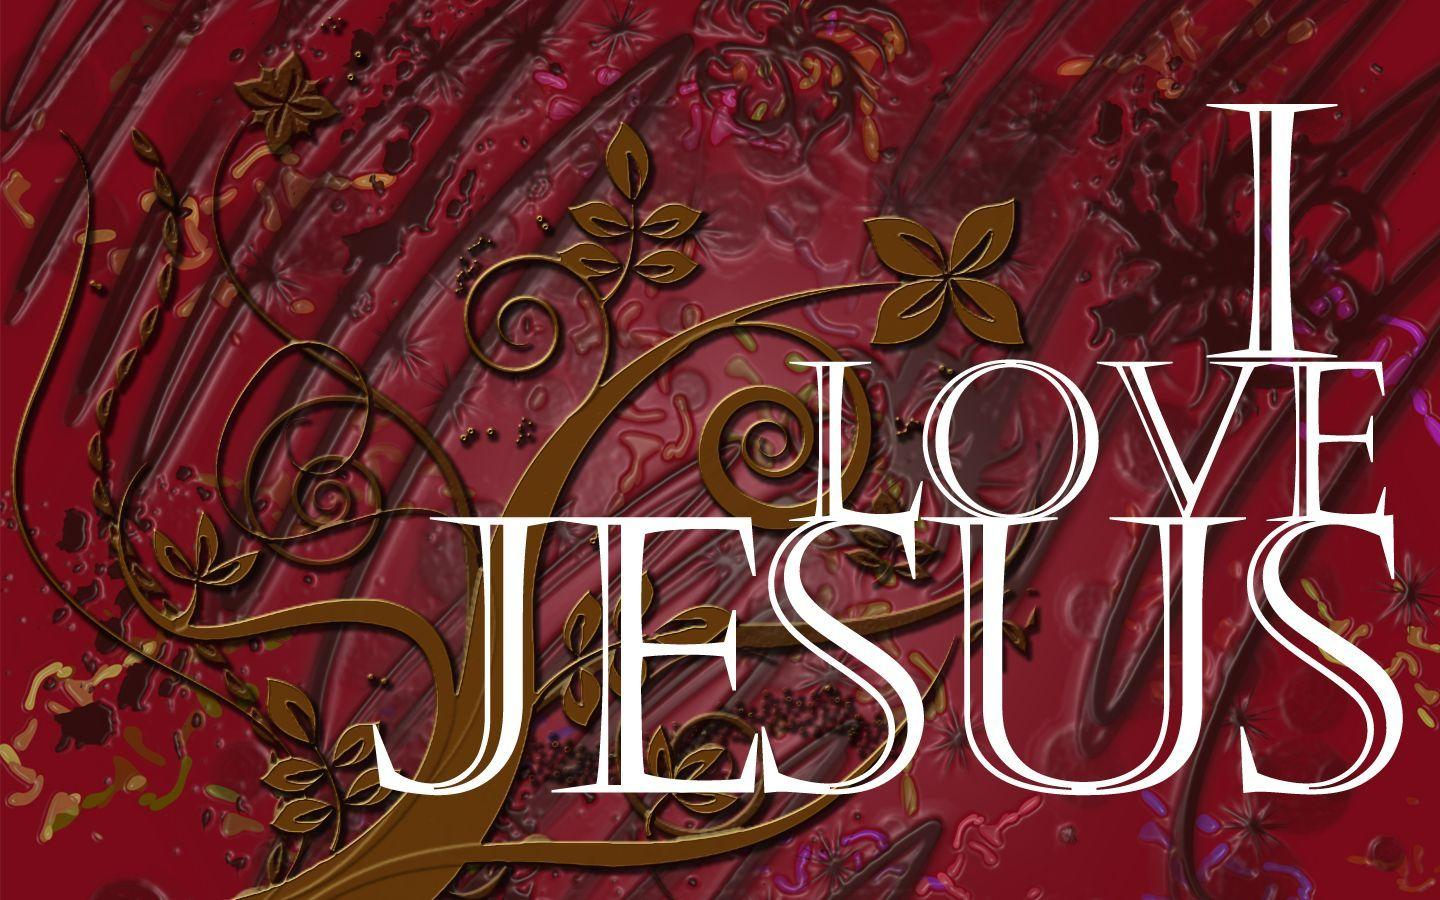 Love You Jesus Wallpaper : I Love Jesus Wallpapers - Wallpaper cave